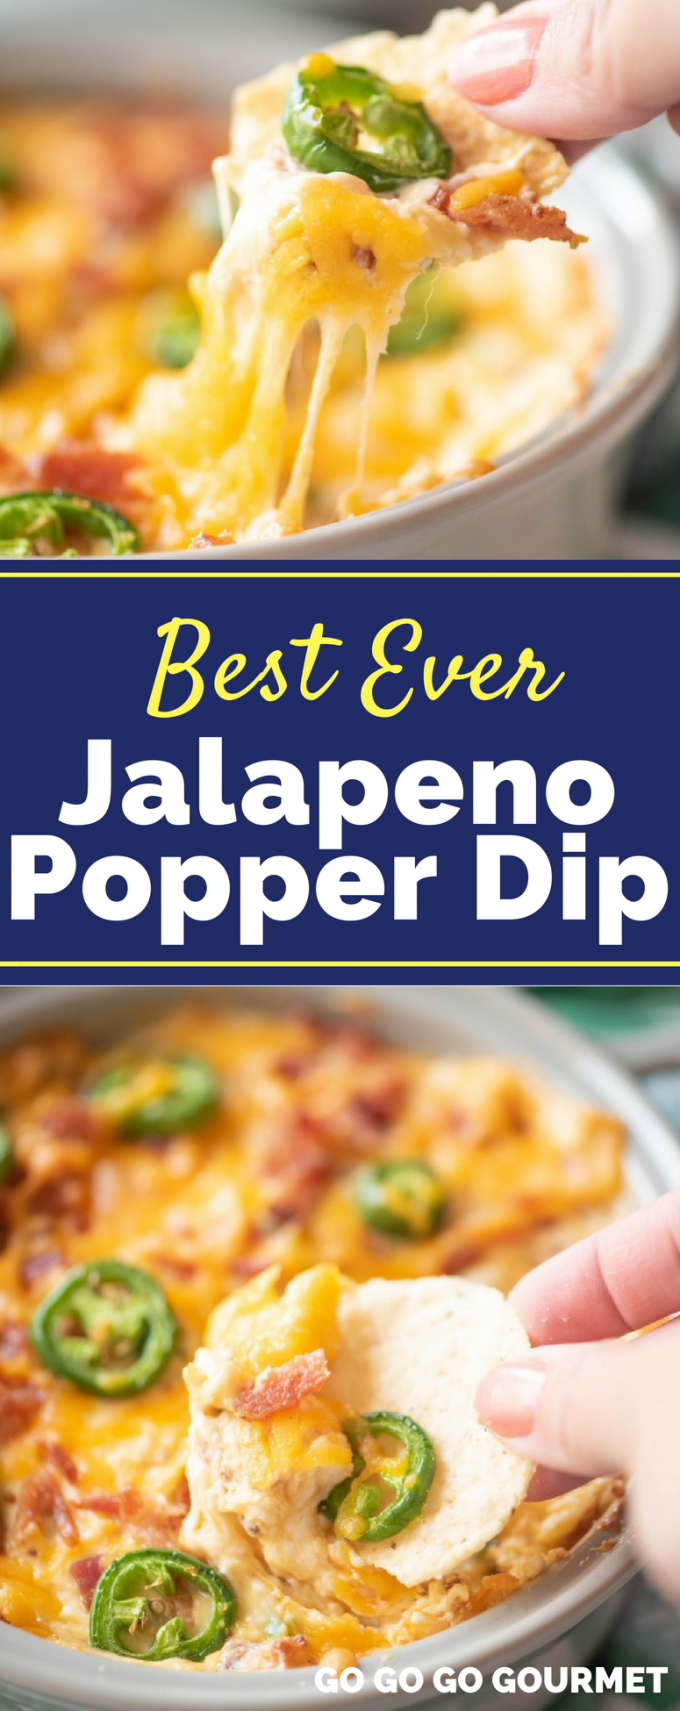 This easy Jalapeno Popper Dip is the best ever appetizer! This dip is perfectly creamy and spicy with just the right amount of bacon. Best serves with Ritz crackers, or even tortilla chips! #jalapenopopperdip #easyappetizerrecipes #easyappetizer #gogogogourmet